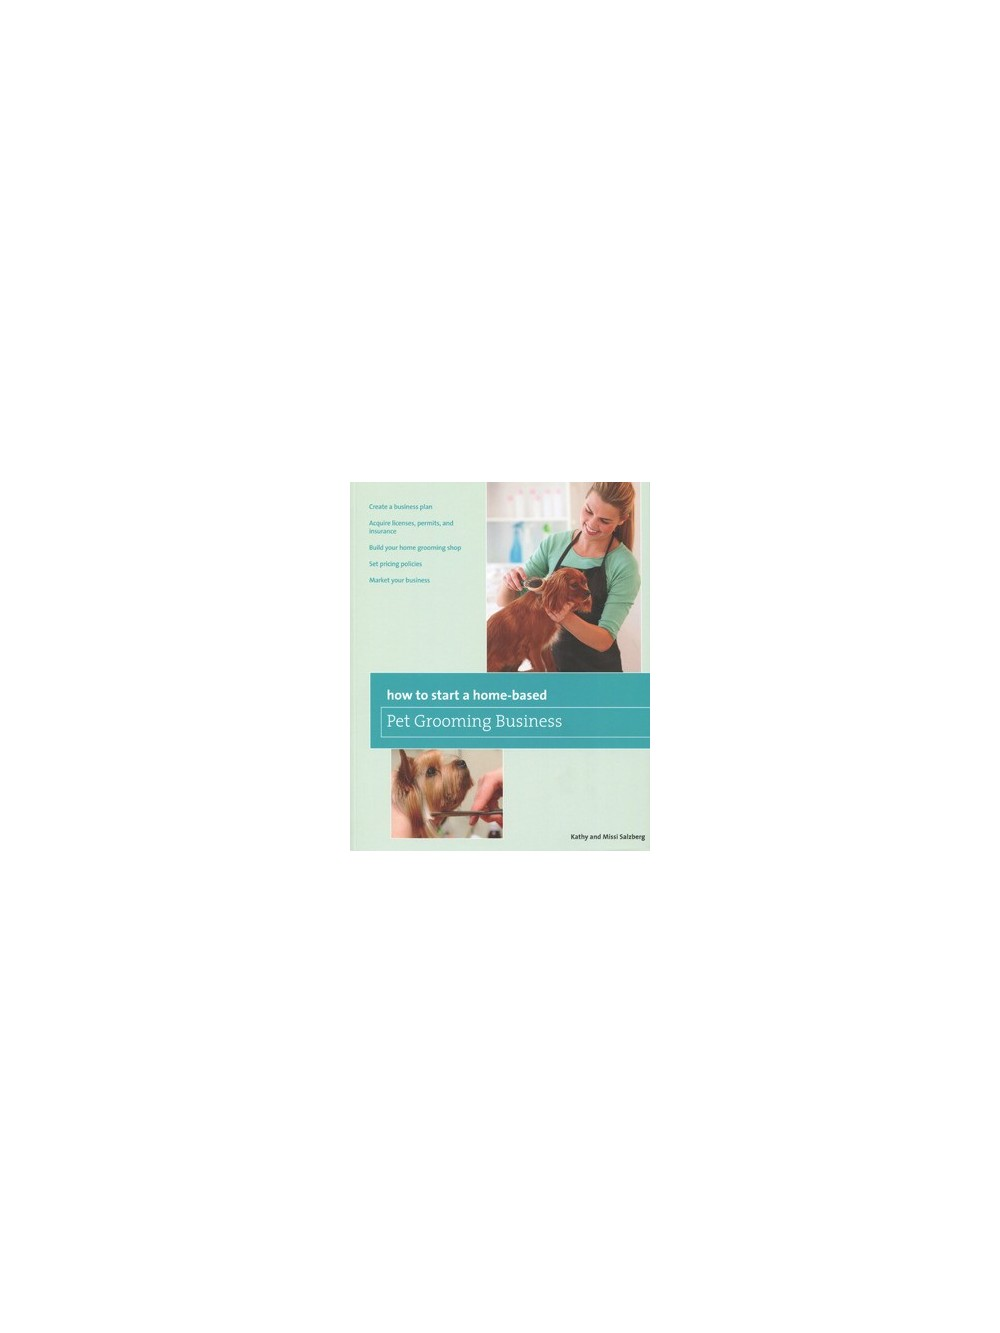 How To Start a Home-based Pet Grooming Business - Books for Animal ...